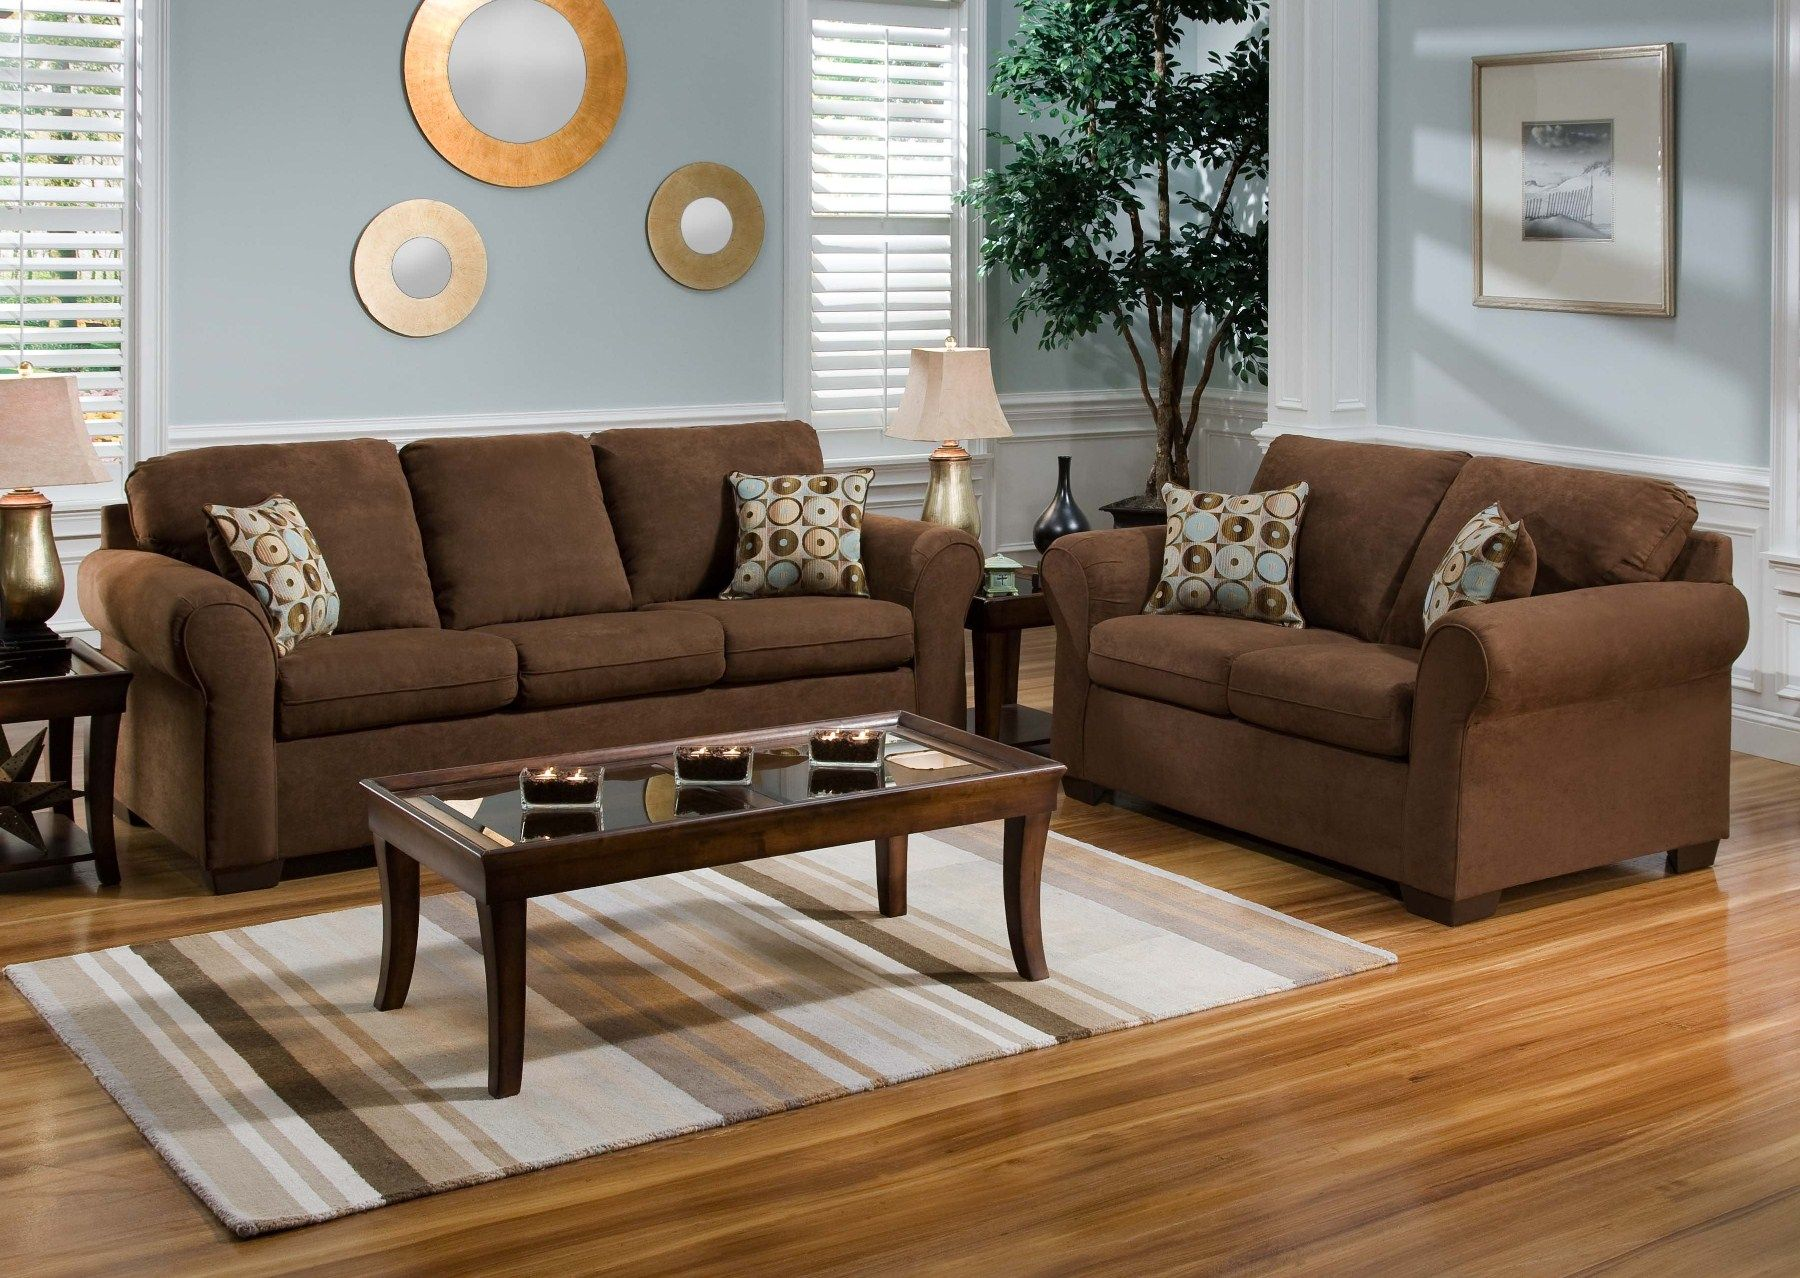 Living Room Warm Living Room Color Schemes With Chocolate Brown